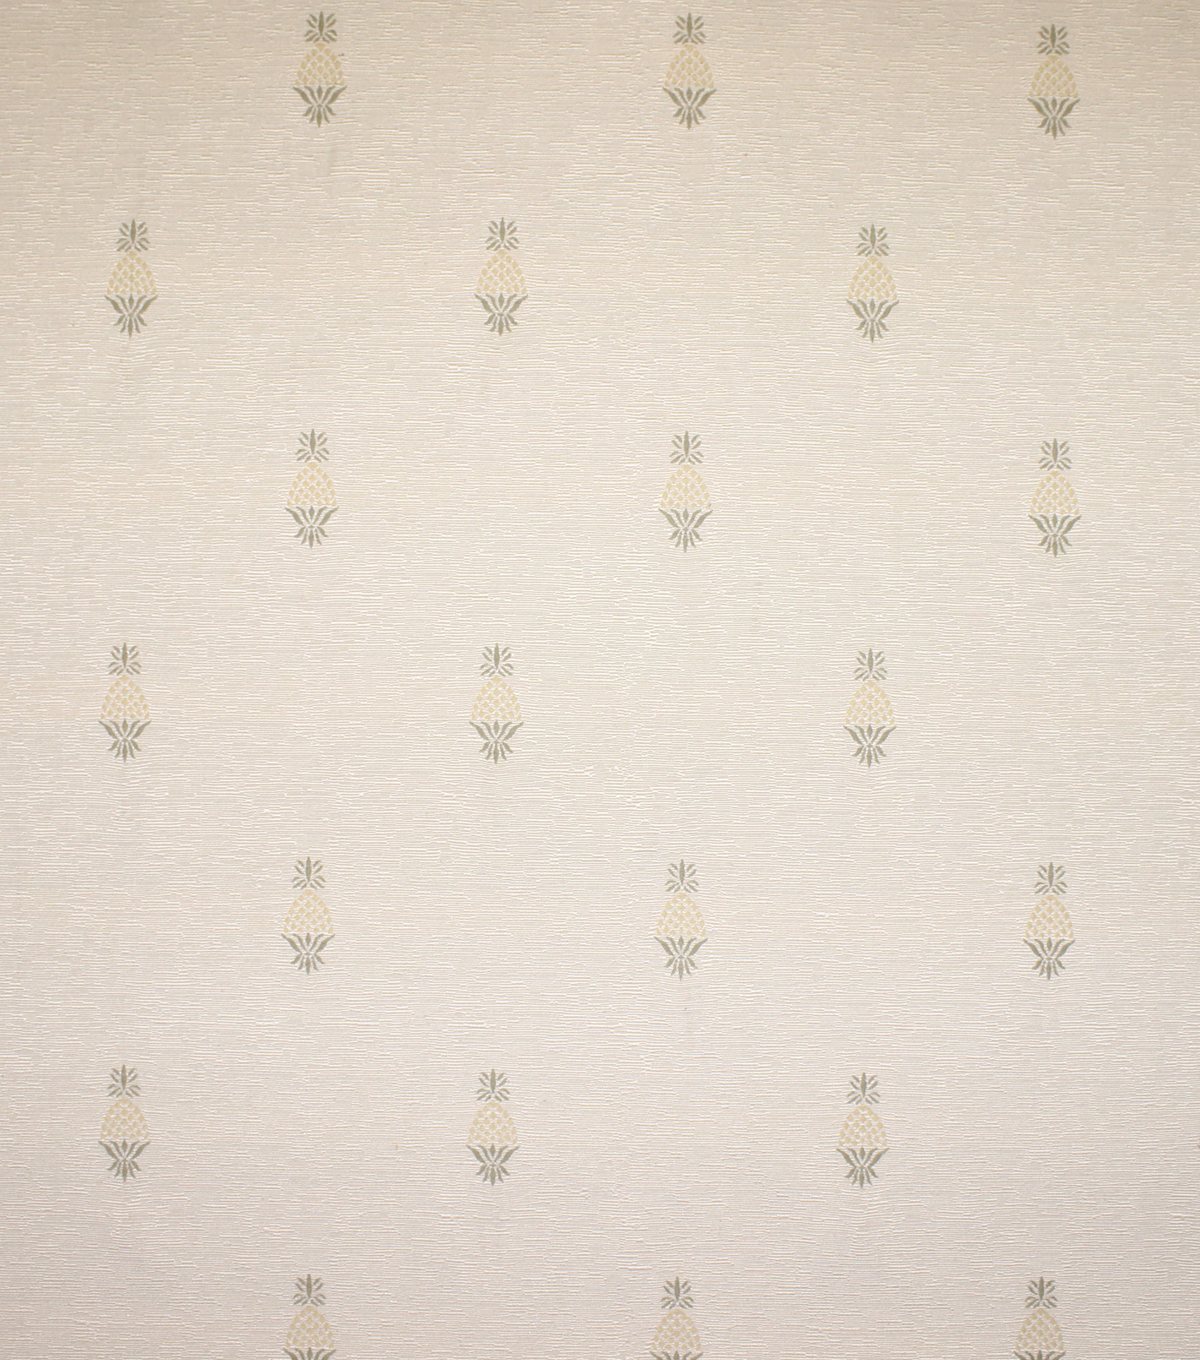 Upholstery Fabric-Barrow M6547-5806 Oyster